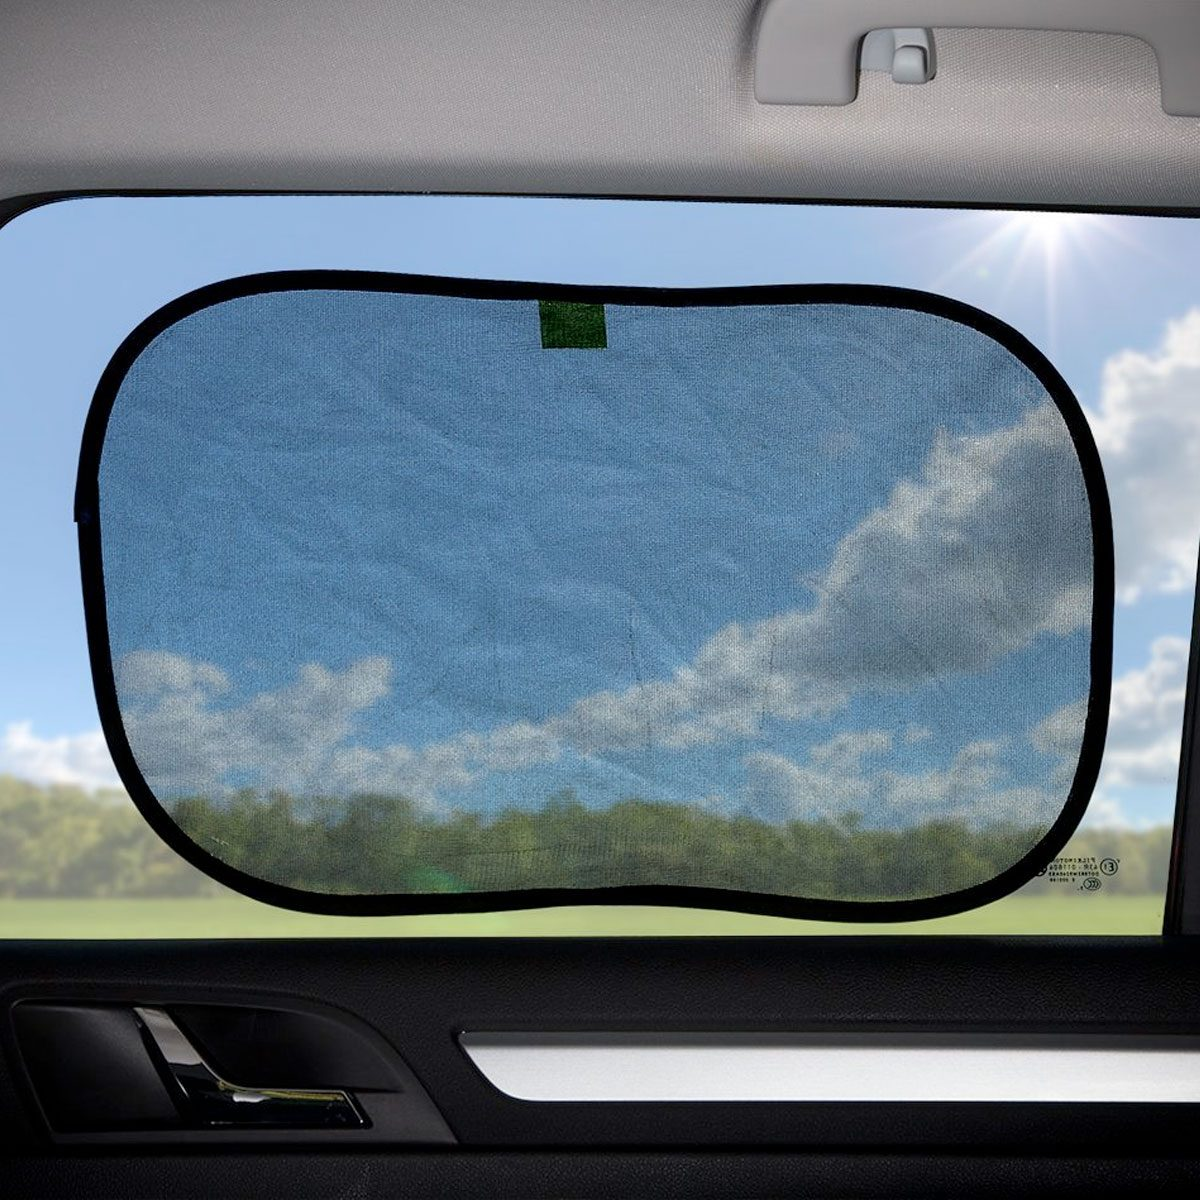 Venture Universal Static Cling car sunshade